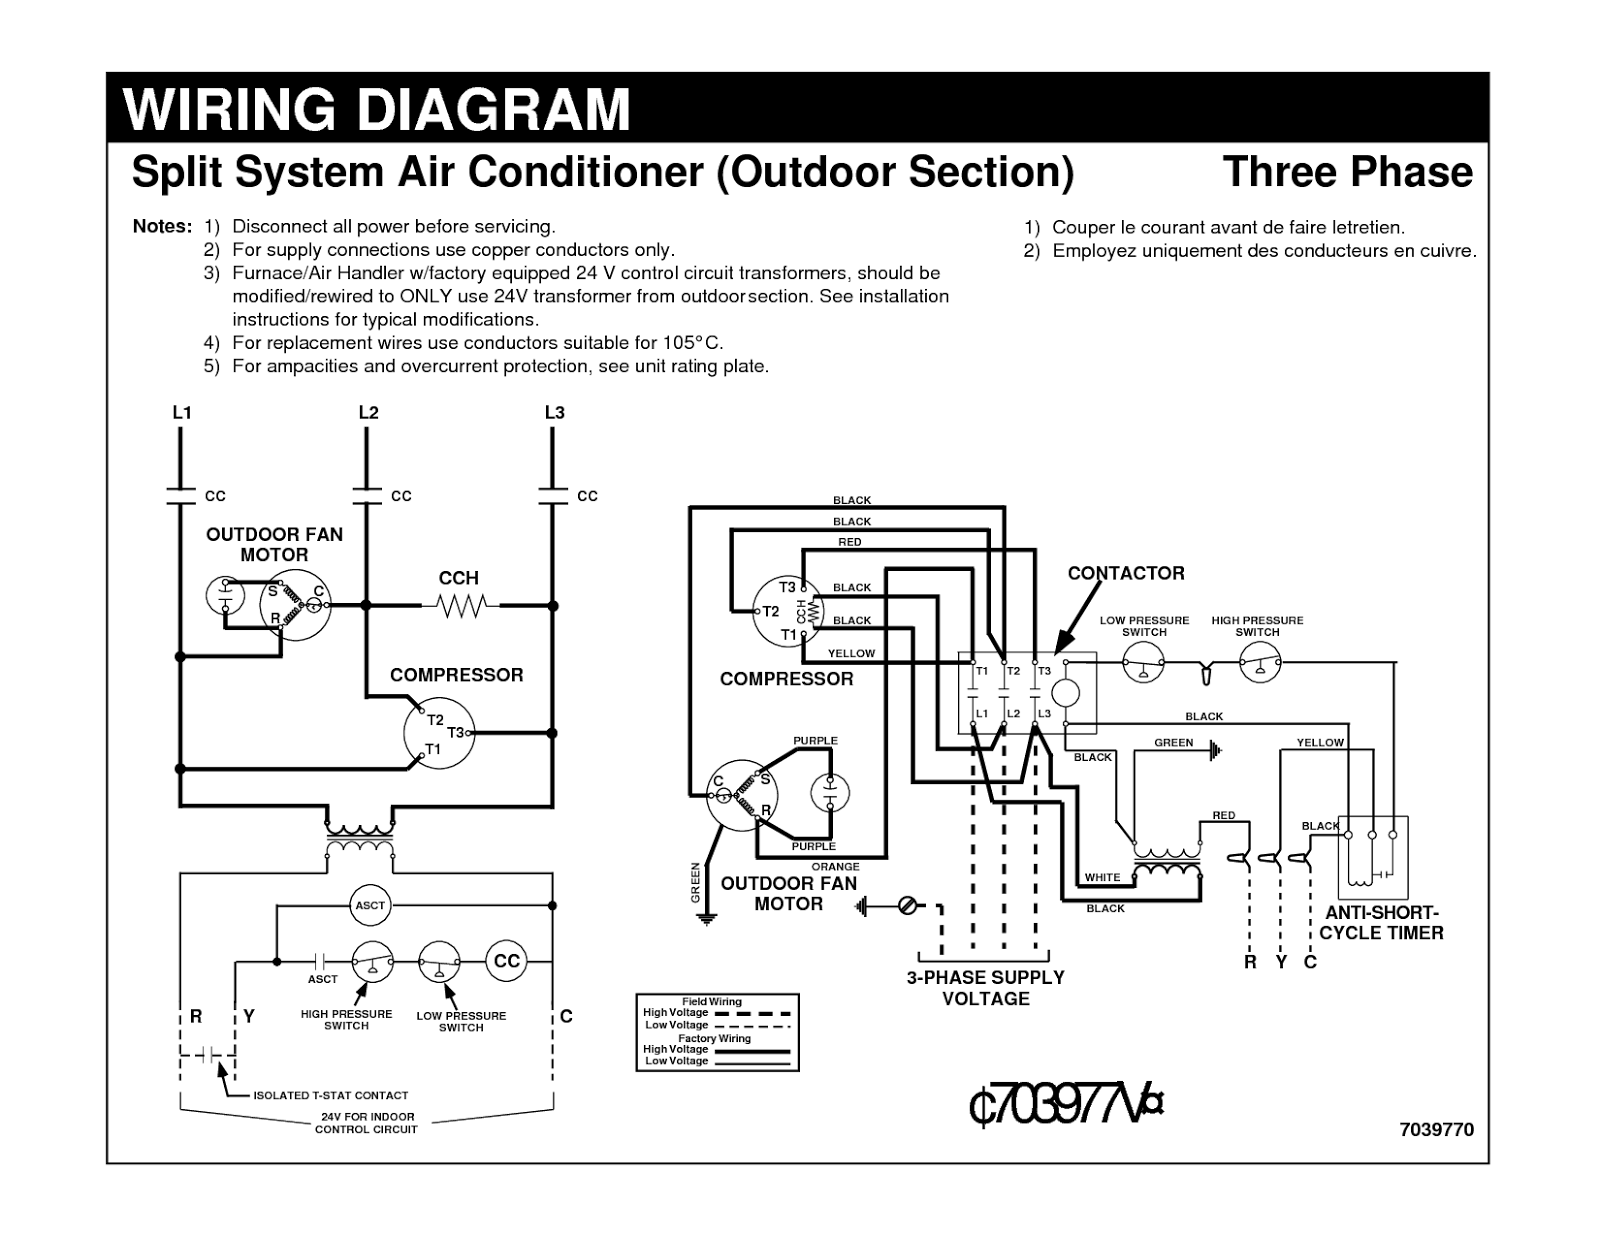 ge air conditioner wiring diagram electrical wiring diagrams for air conditioning systems ...